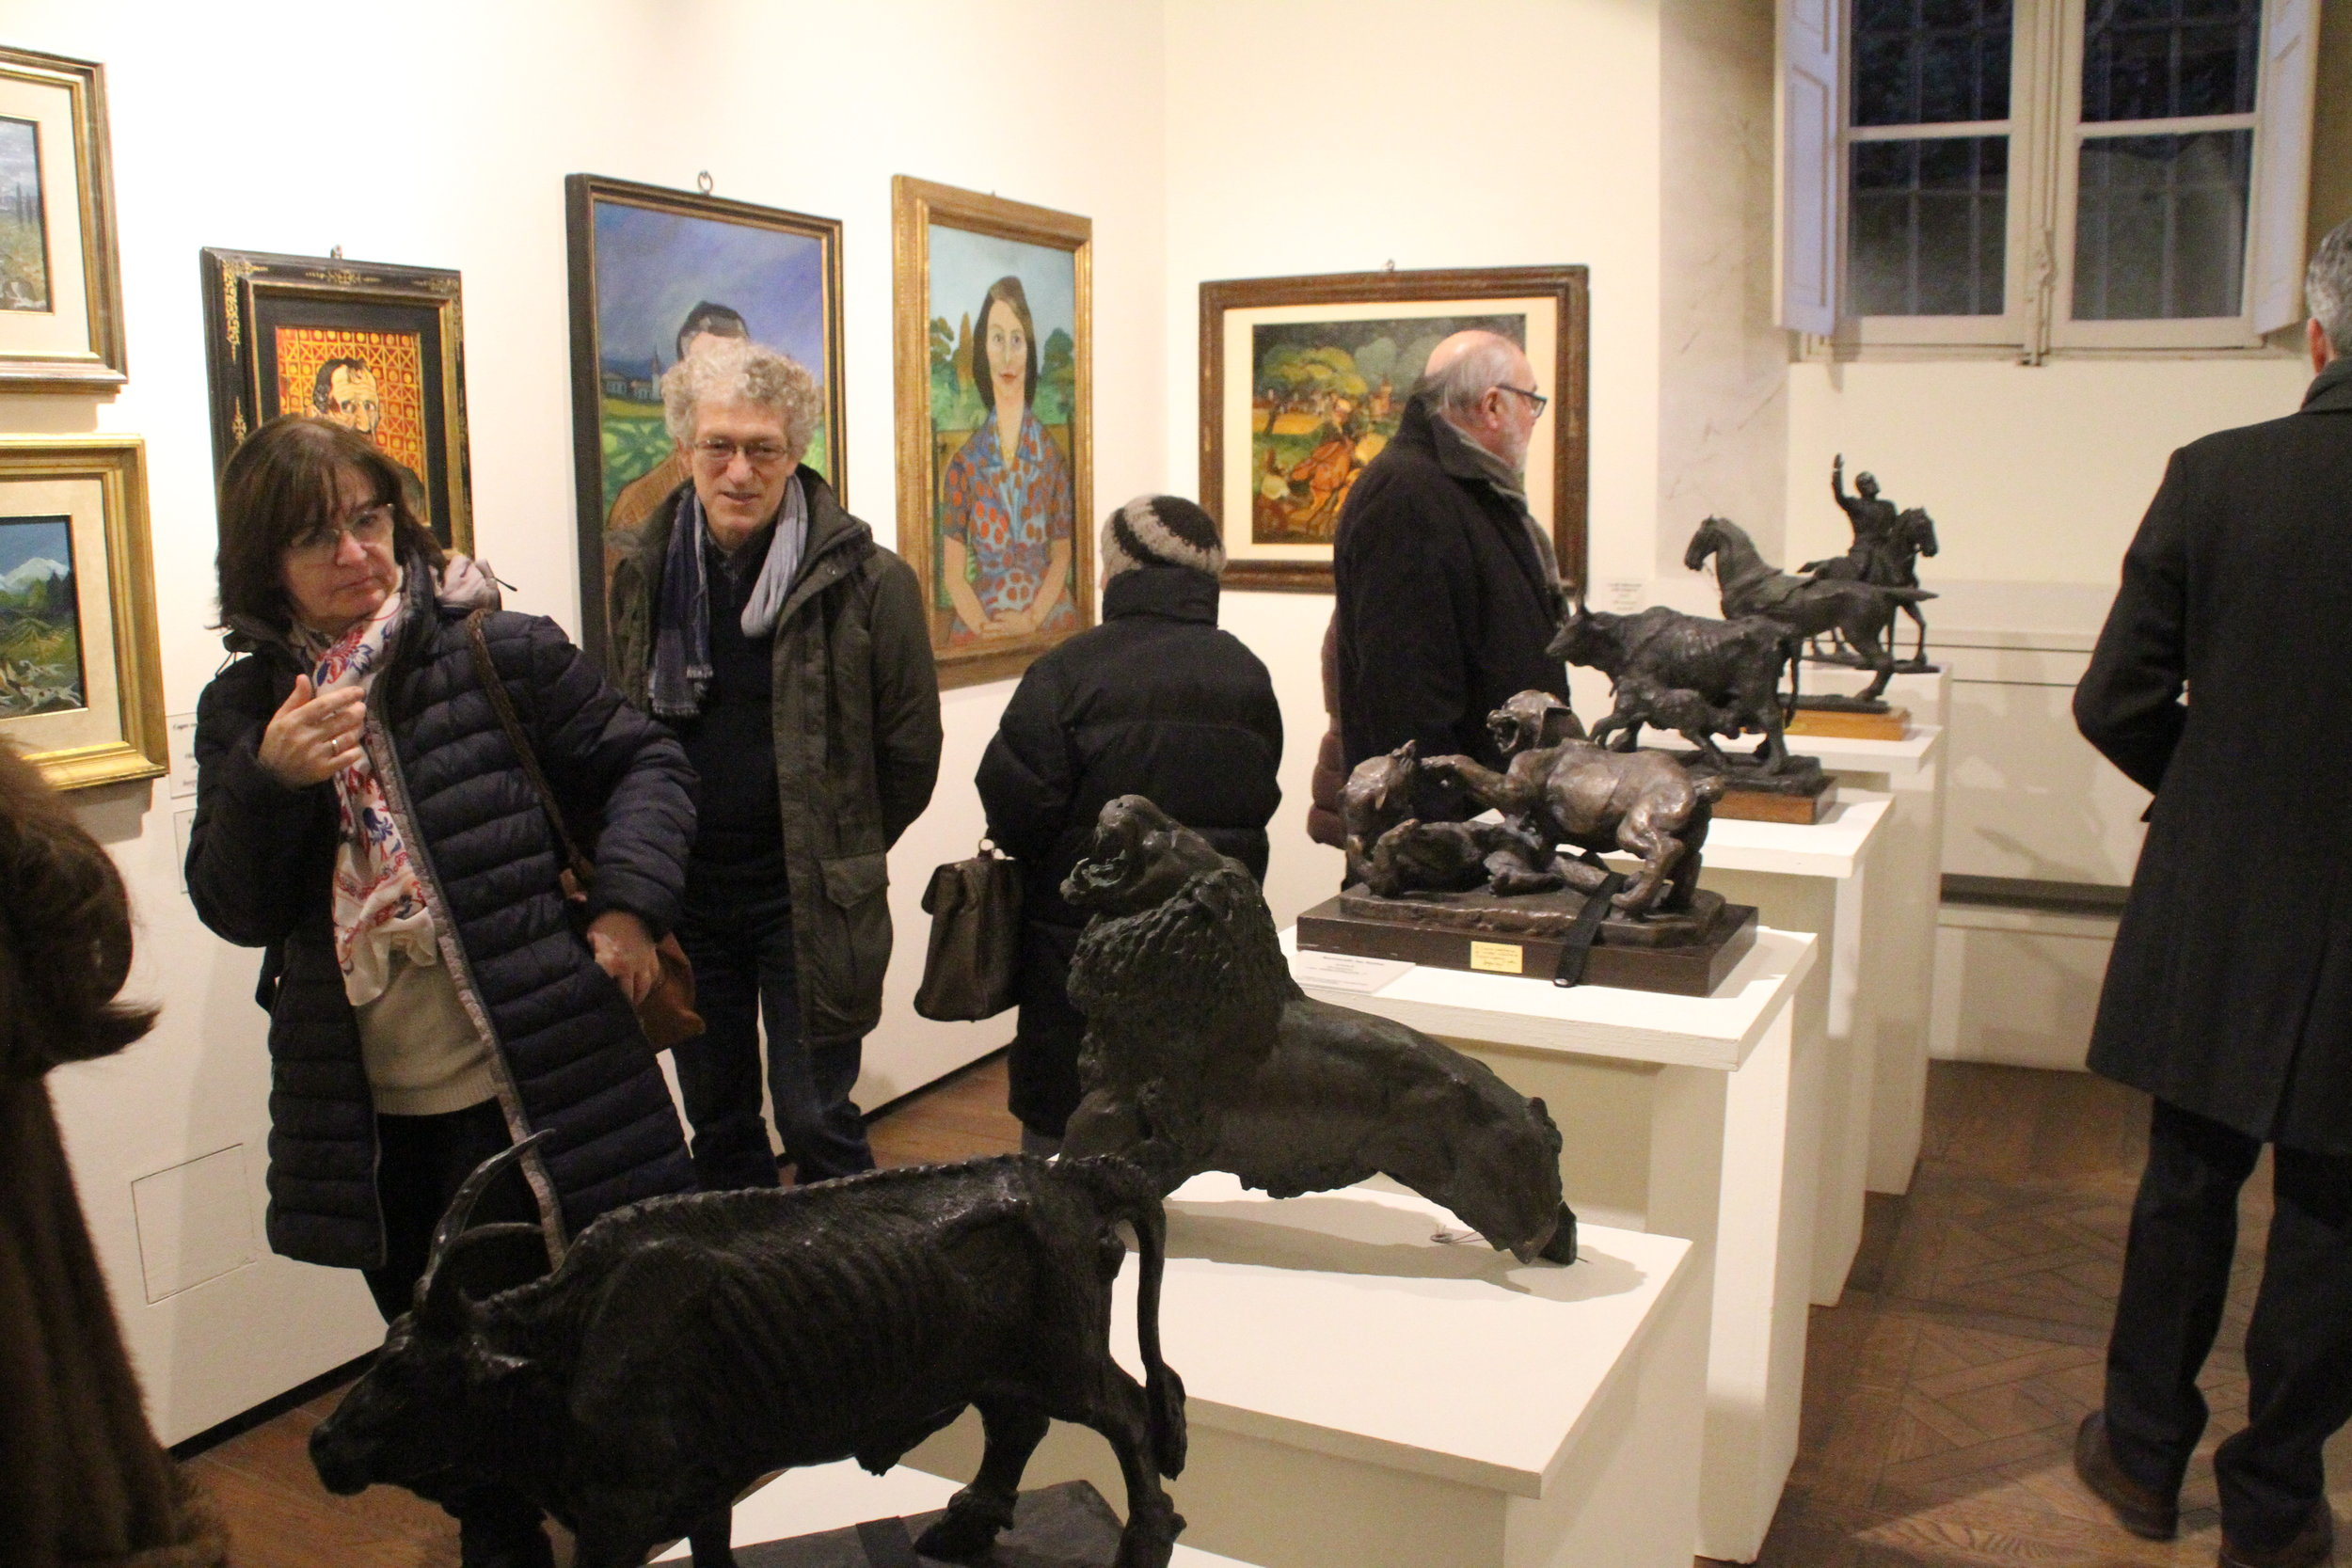 The crowd admires Antonio Ligabue's paintings and sculptures.